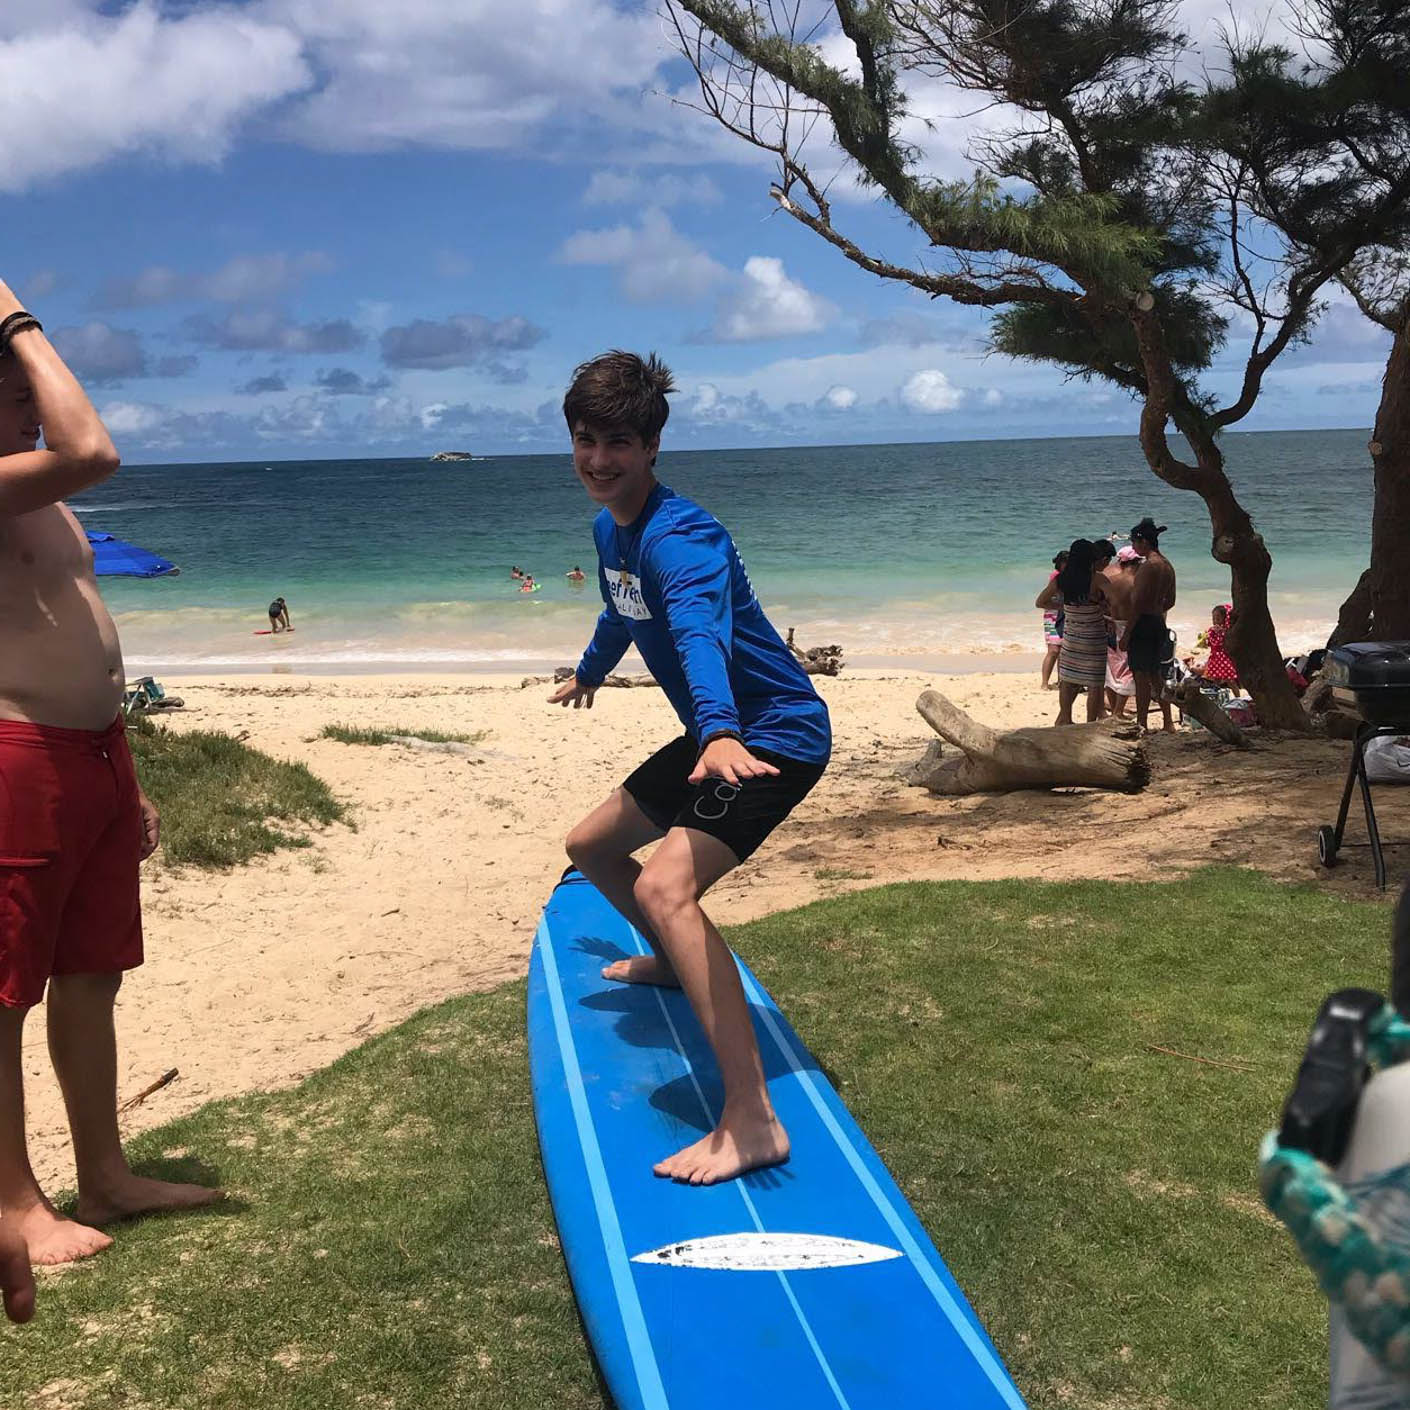 Hawaii Service surfing